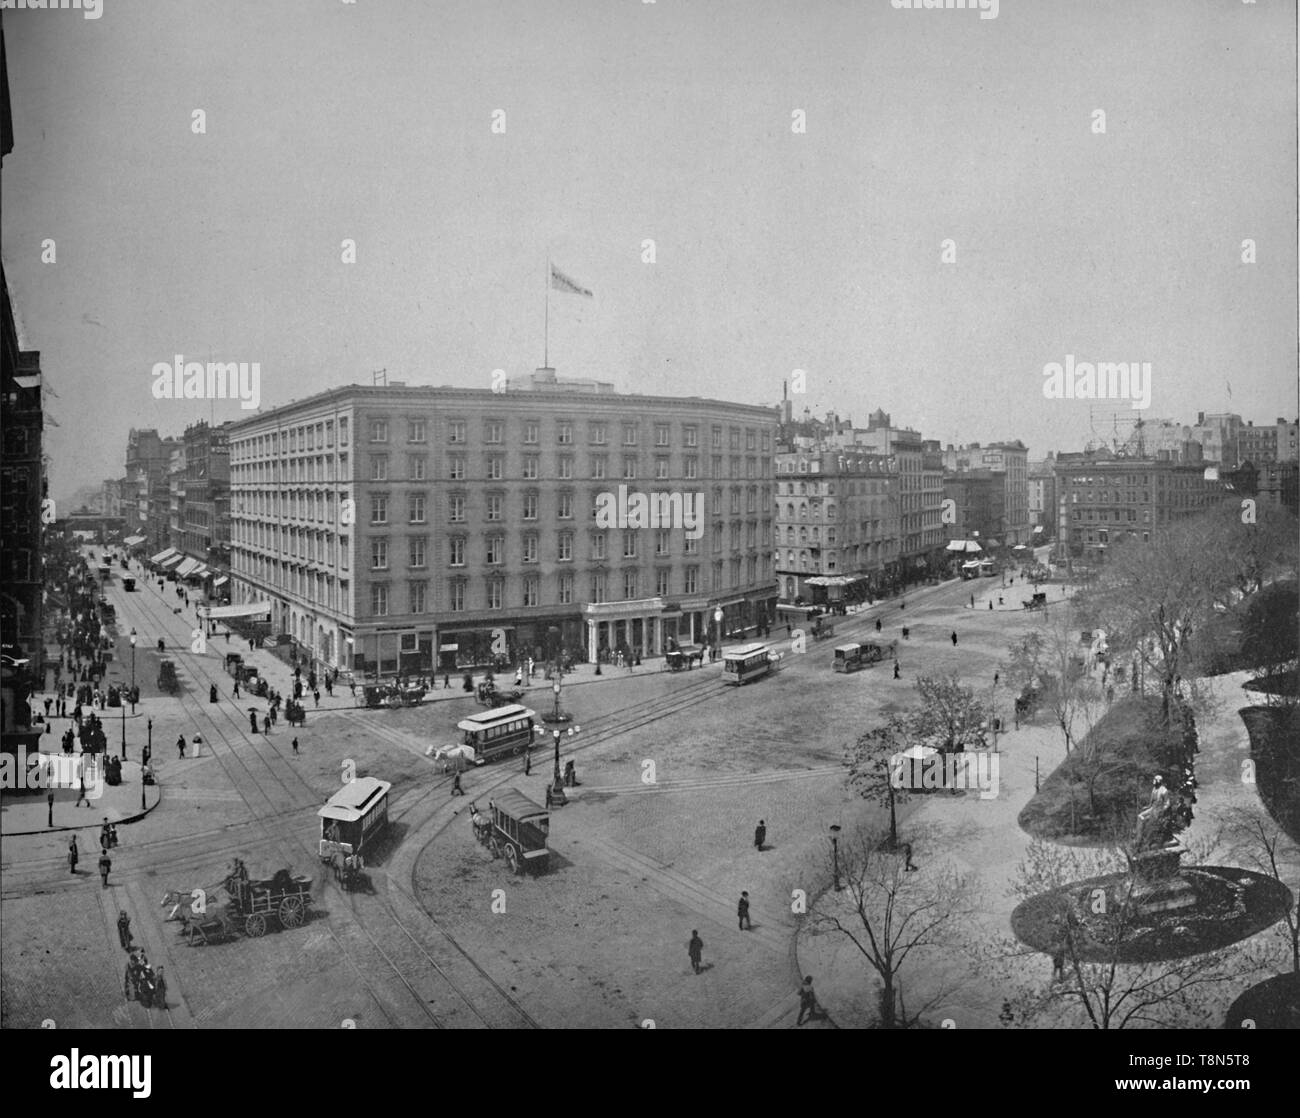 """'Fifth Avenue and Madison Square, New York', c1897. The Fifth Avenue Hotel, built 1856-59 by Amos Richards Eno at the intersection of Fifth Avenue and Broadway in Manhattan. Madison Square was named after James Madison, fourth President of the United States.  From """"A Tour Through the New World America"""", by Prof. Geo. R. Cromwell. [C. N. Greig & Co., London, c1897] Stock Photo"""